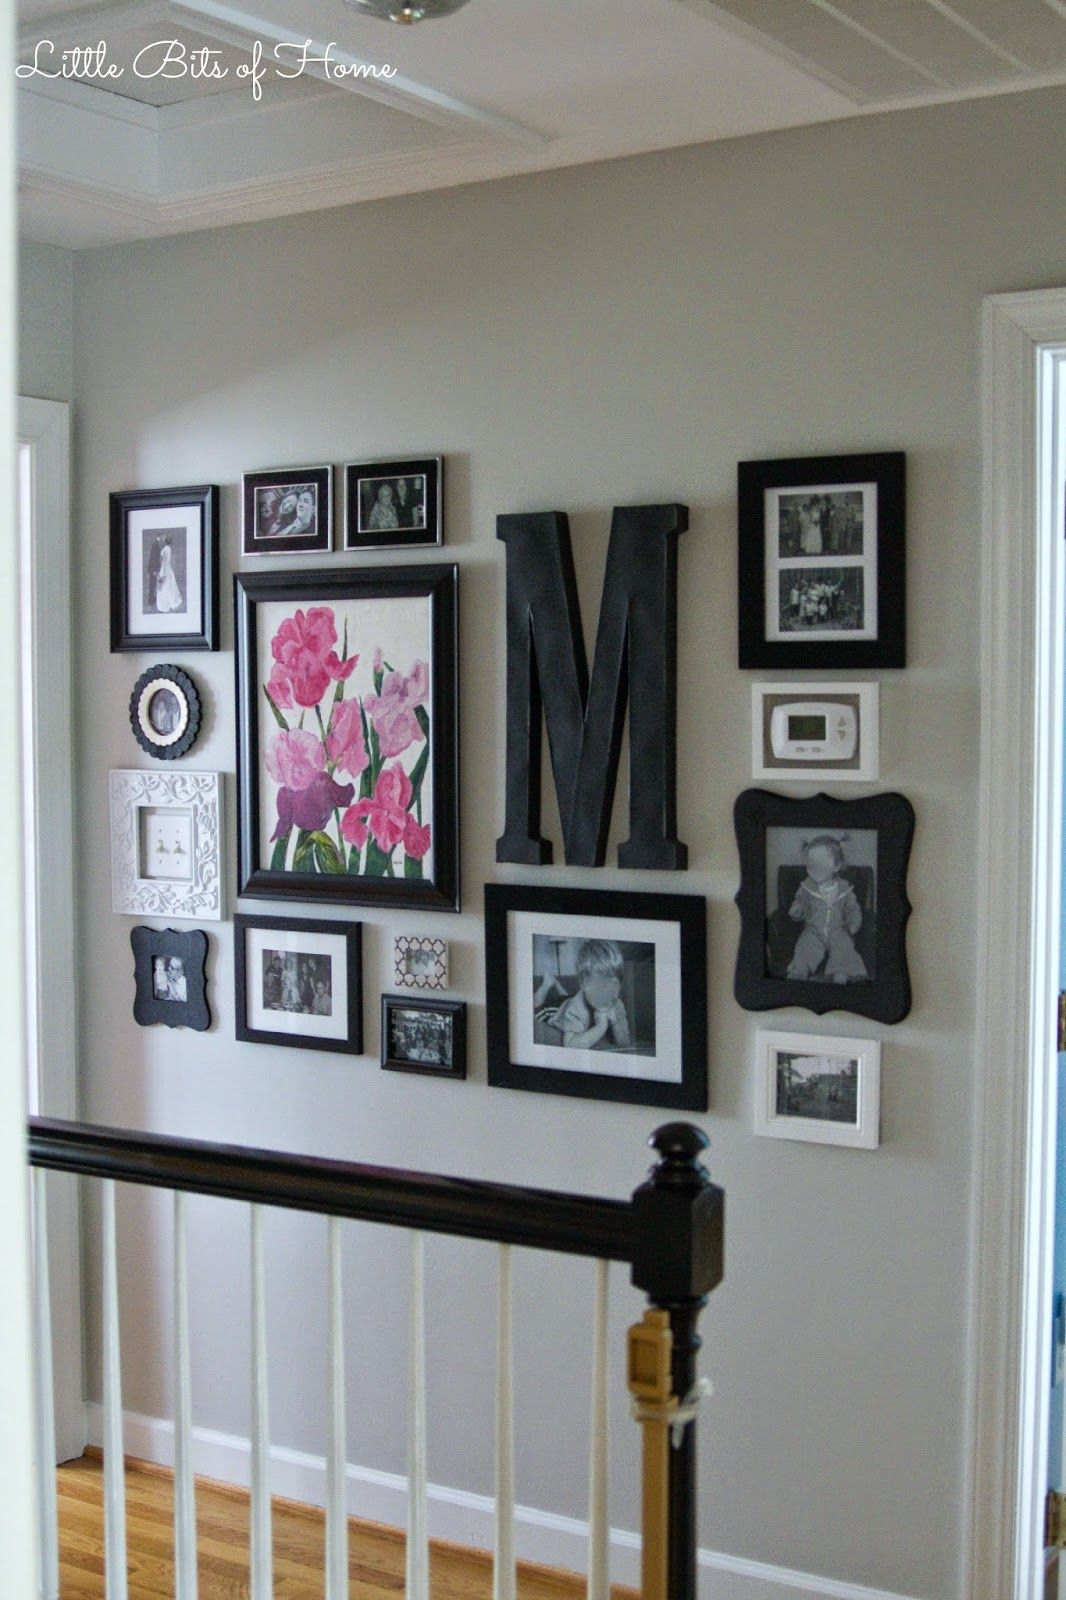 Little Bits of Home: Hallway Gallery Wall | Gallery Walls ...